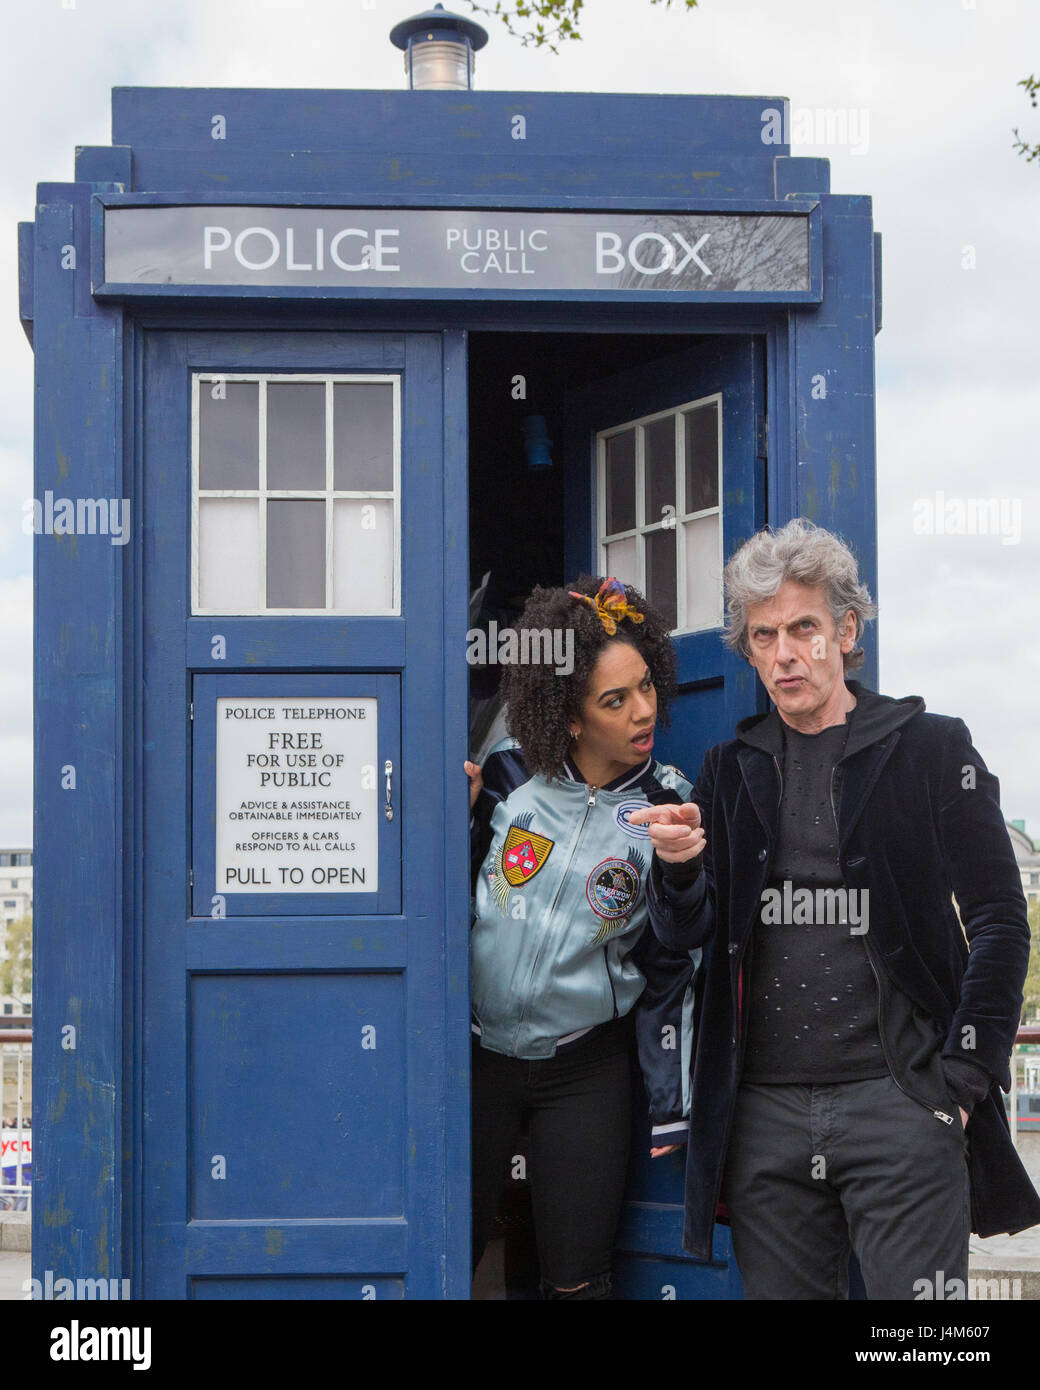 Peter Capaldi in costume as Dr. Who and Pearl Mackie as new companion Bill Potts promoting the new series of Dr. Who on the Southbank.  sc 1 st  Alamy & Peter Capaldi in costume as Dr. Who and Pearl Mackie as new Stock ...